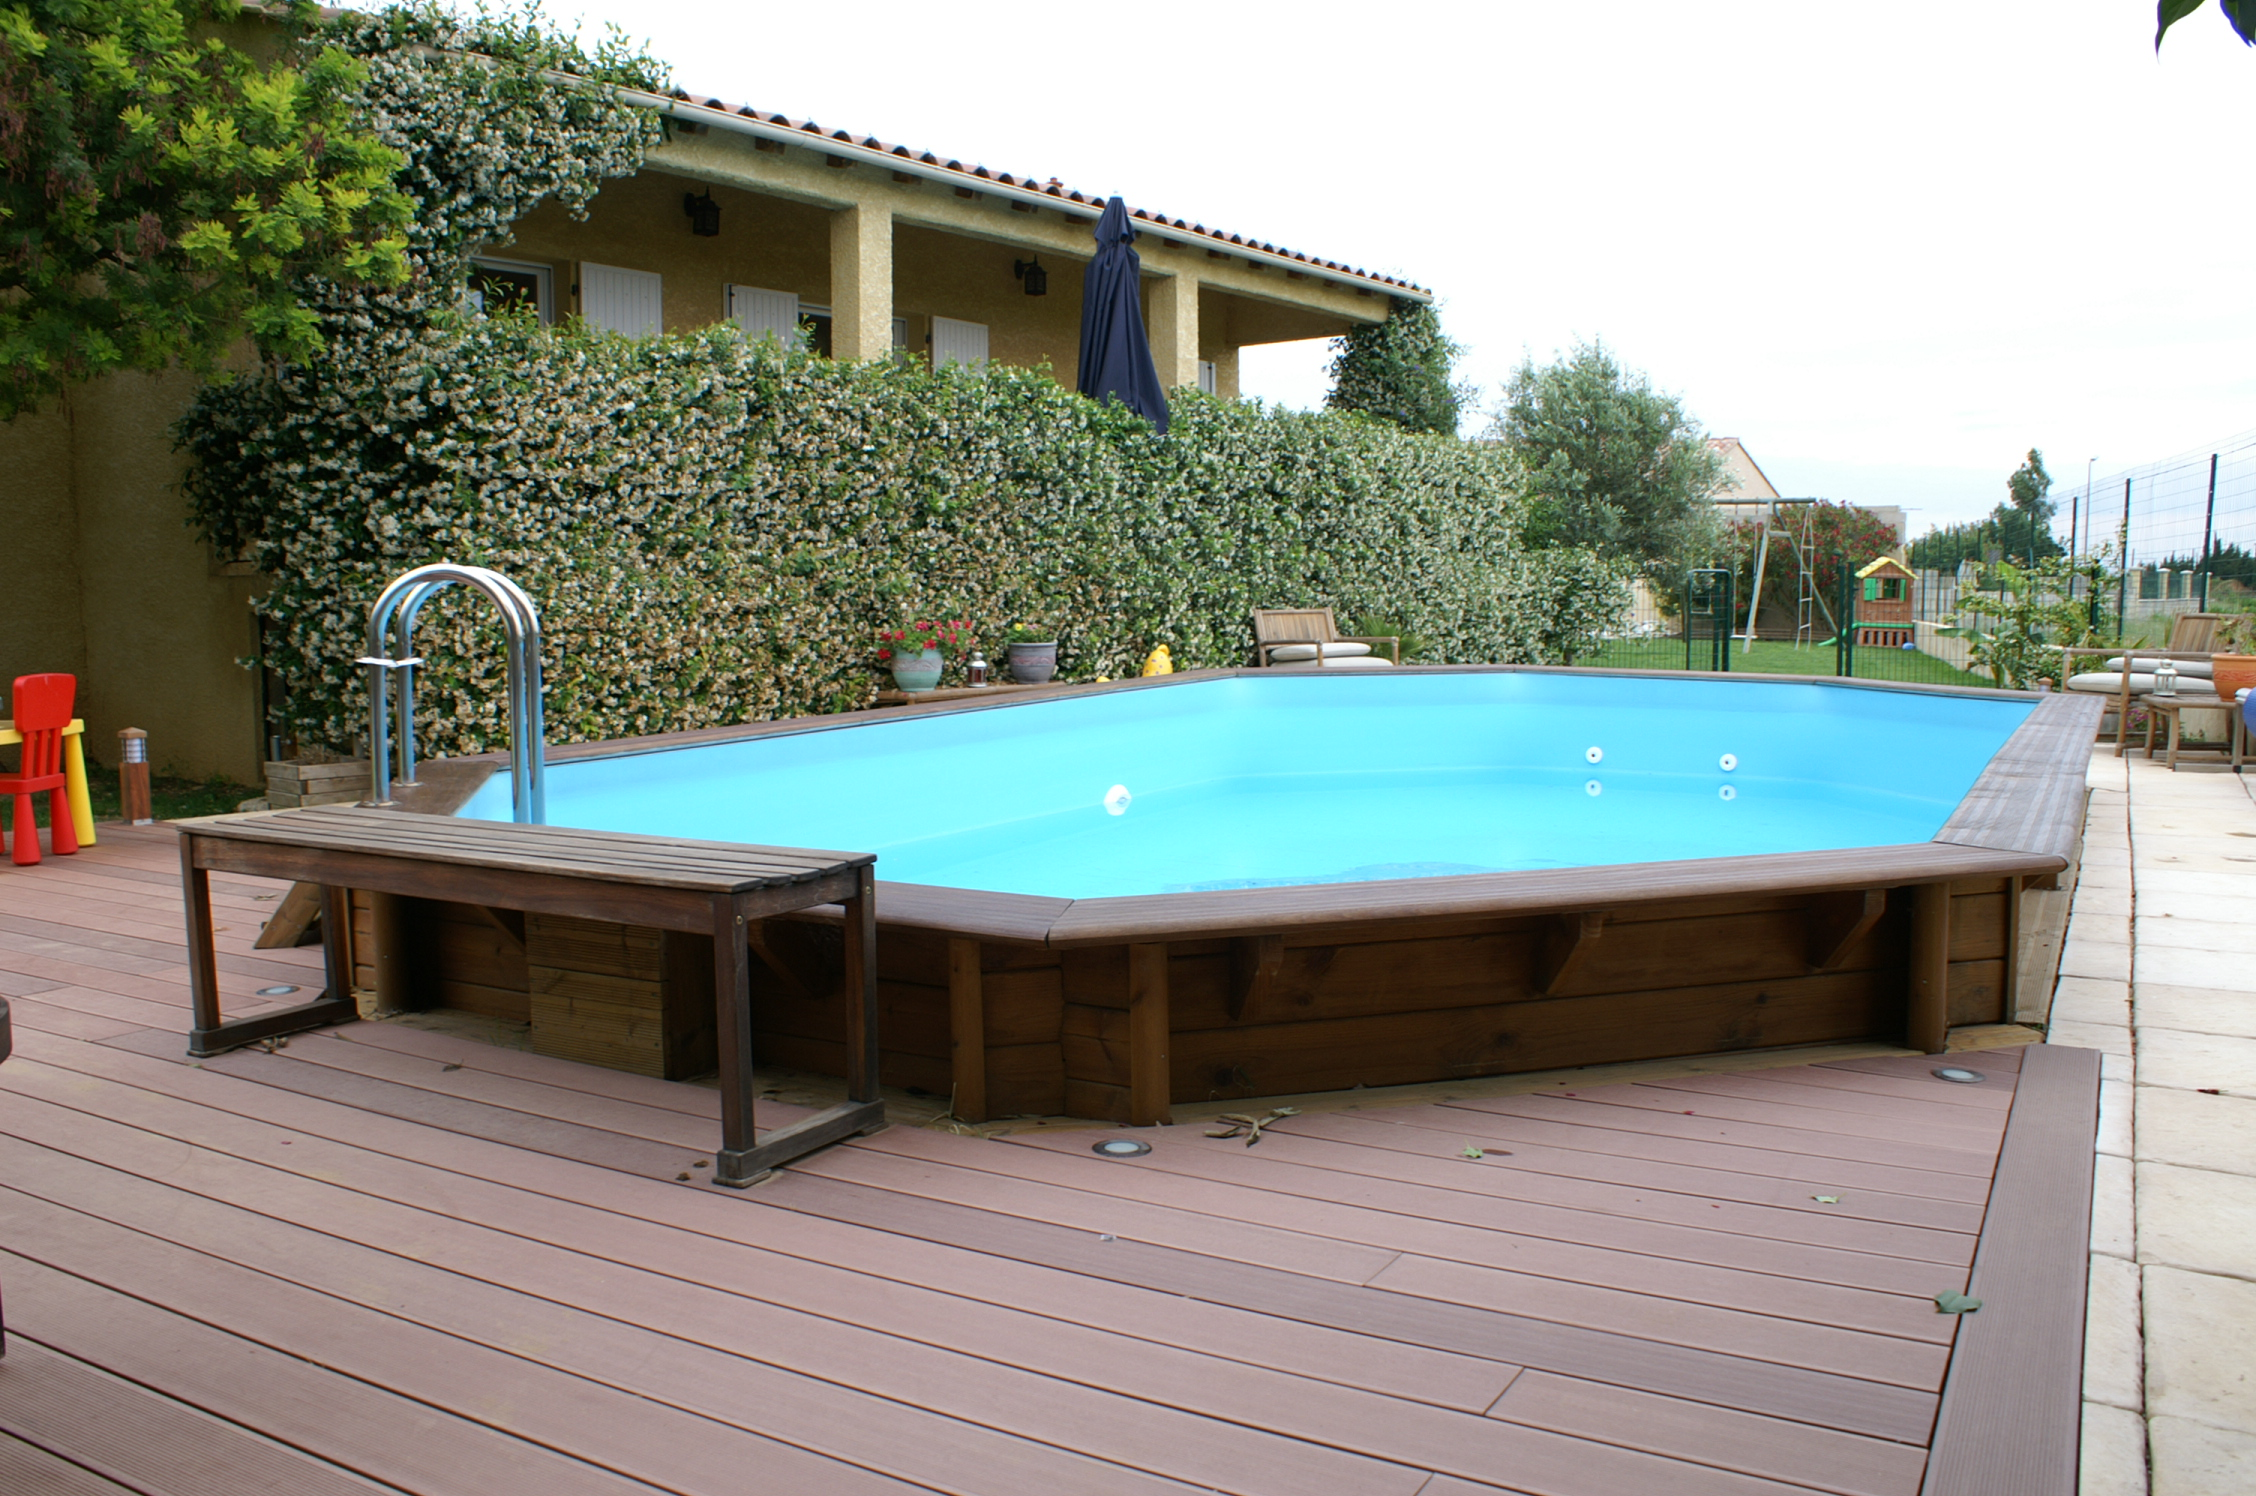 Construction piscines nimes gepad piscines et spa 30000 for Pediluve piscine hors sol